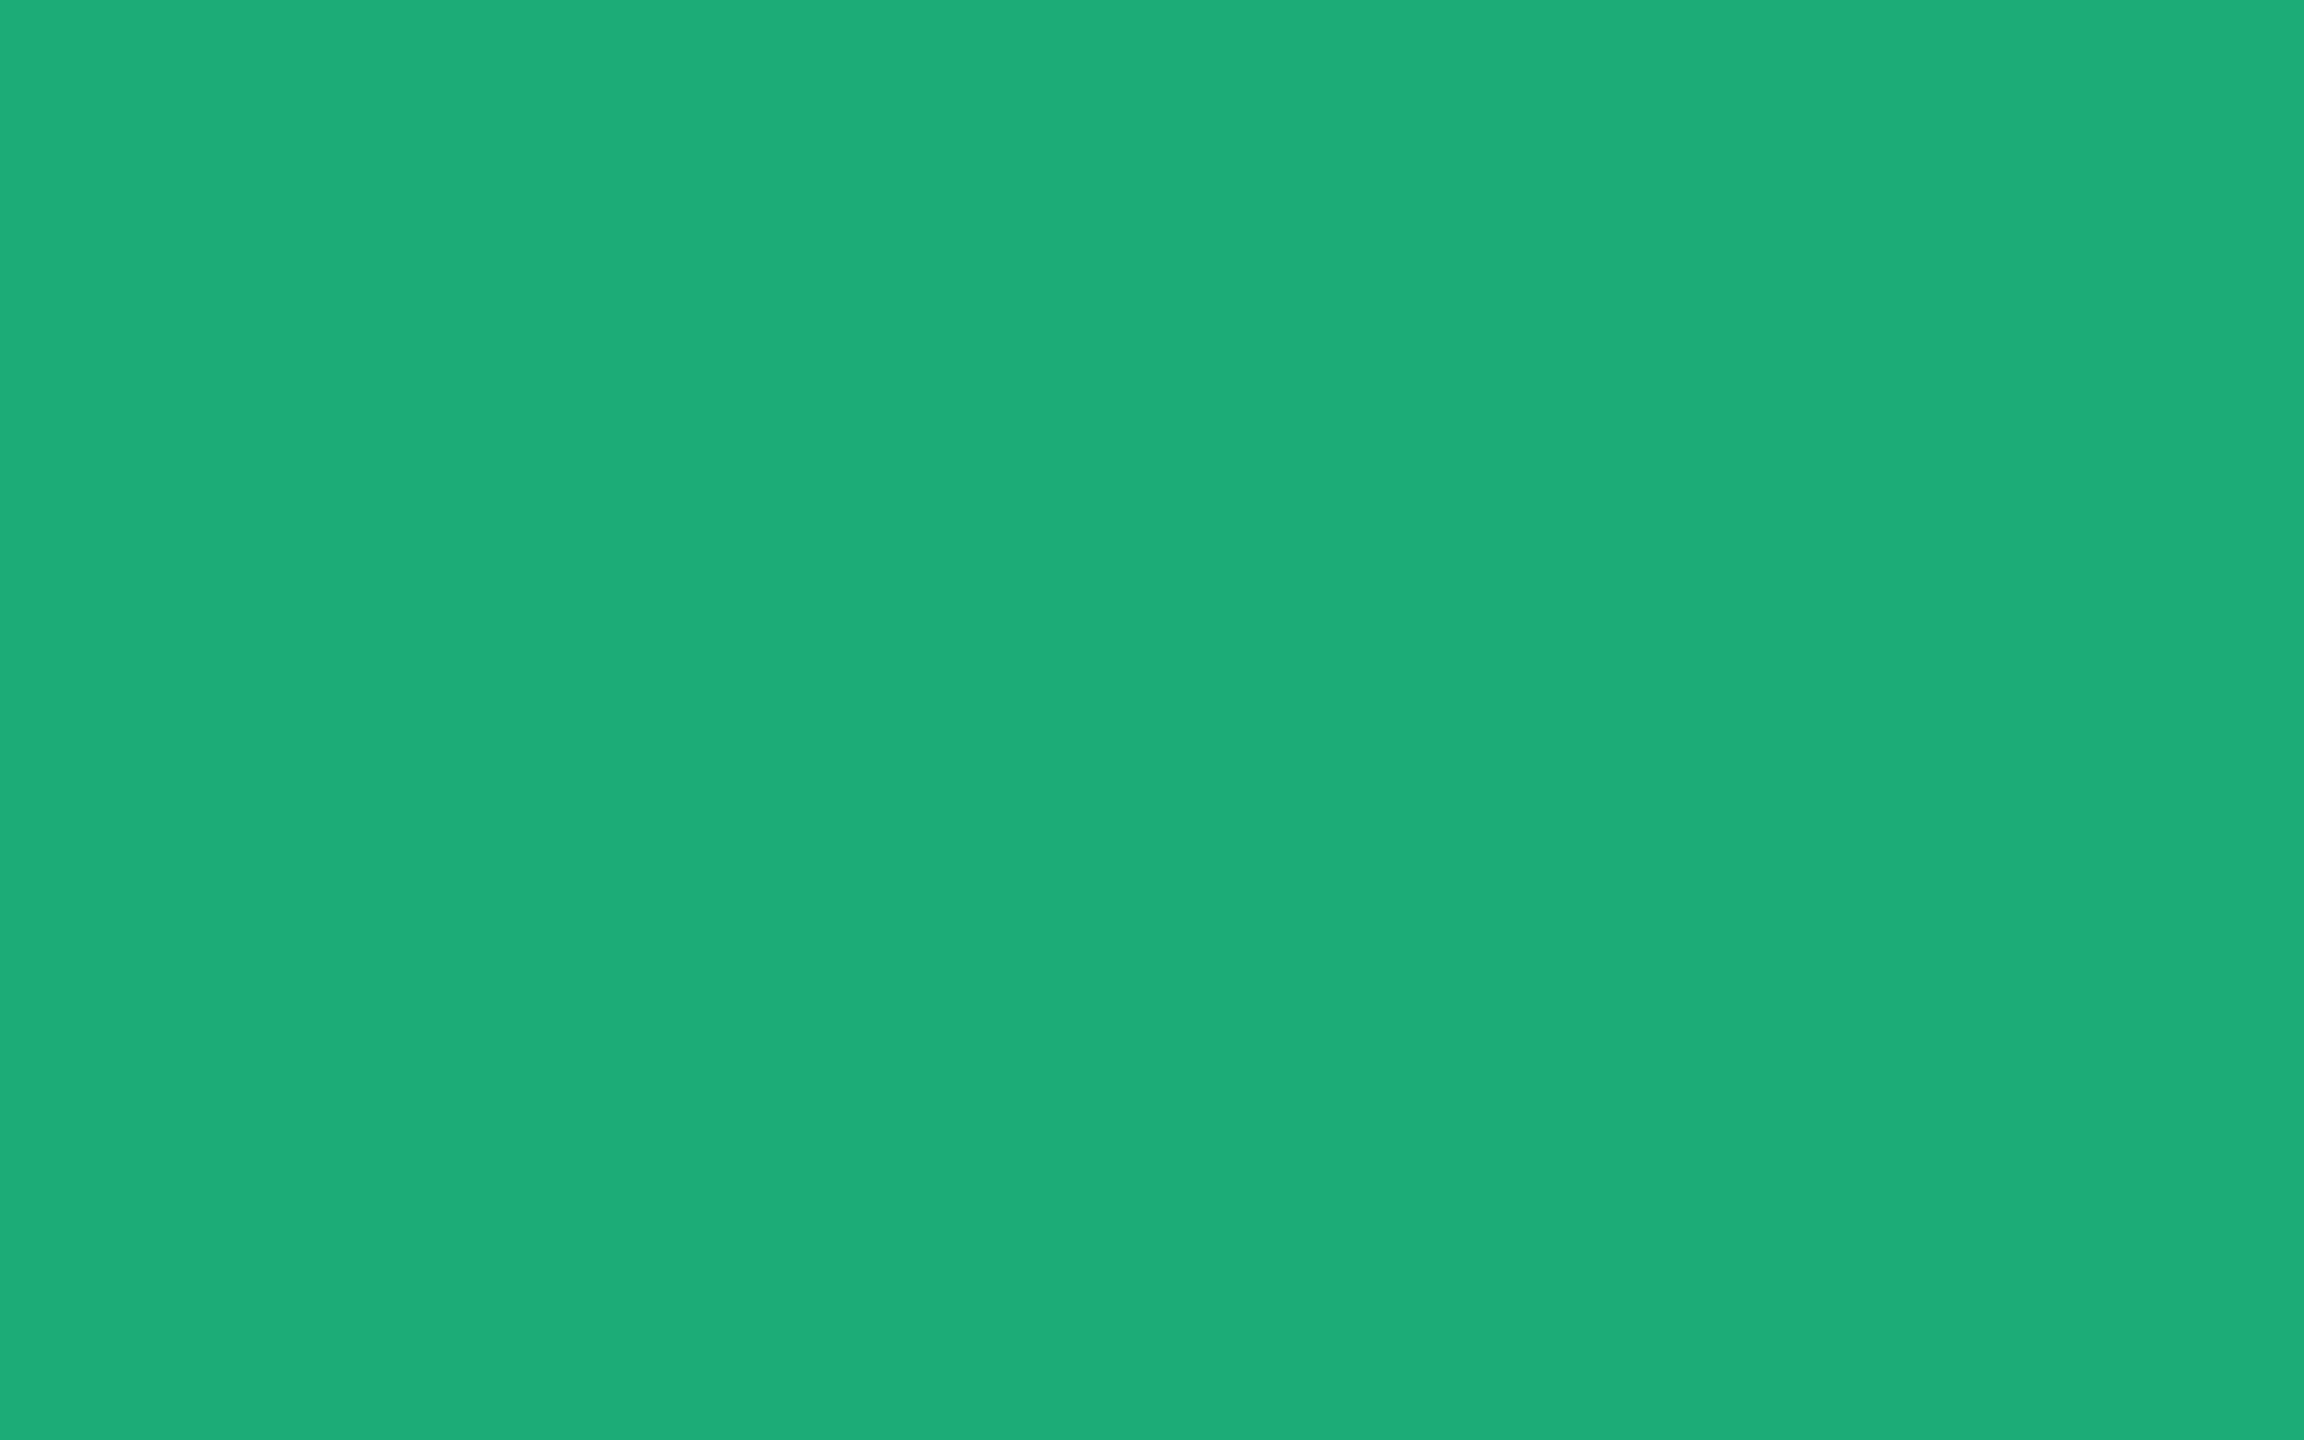 2304x1440 Green Crayola Solid Color Background